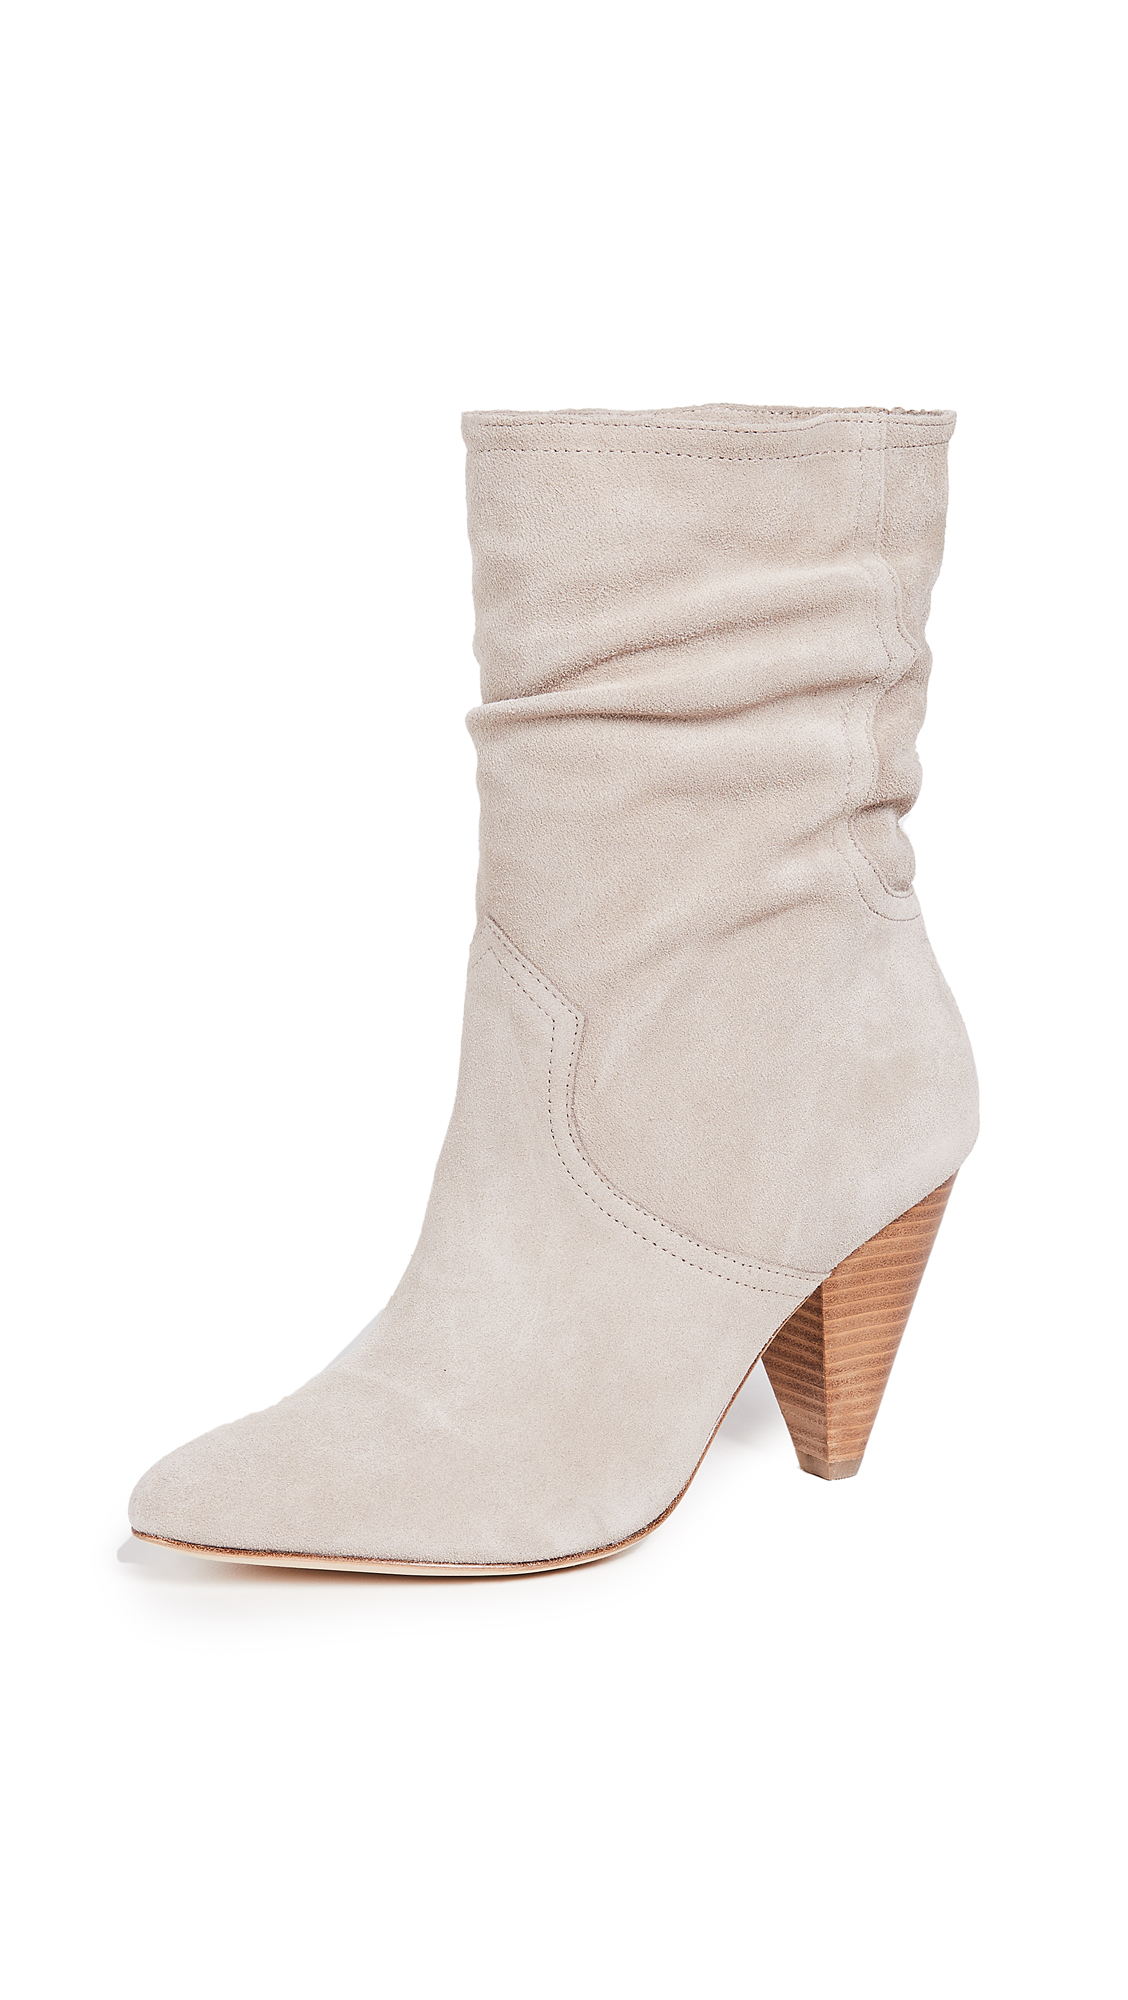 Joie Gabbissy SL Boots - Taupe